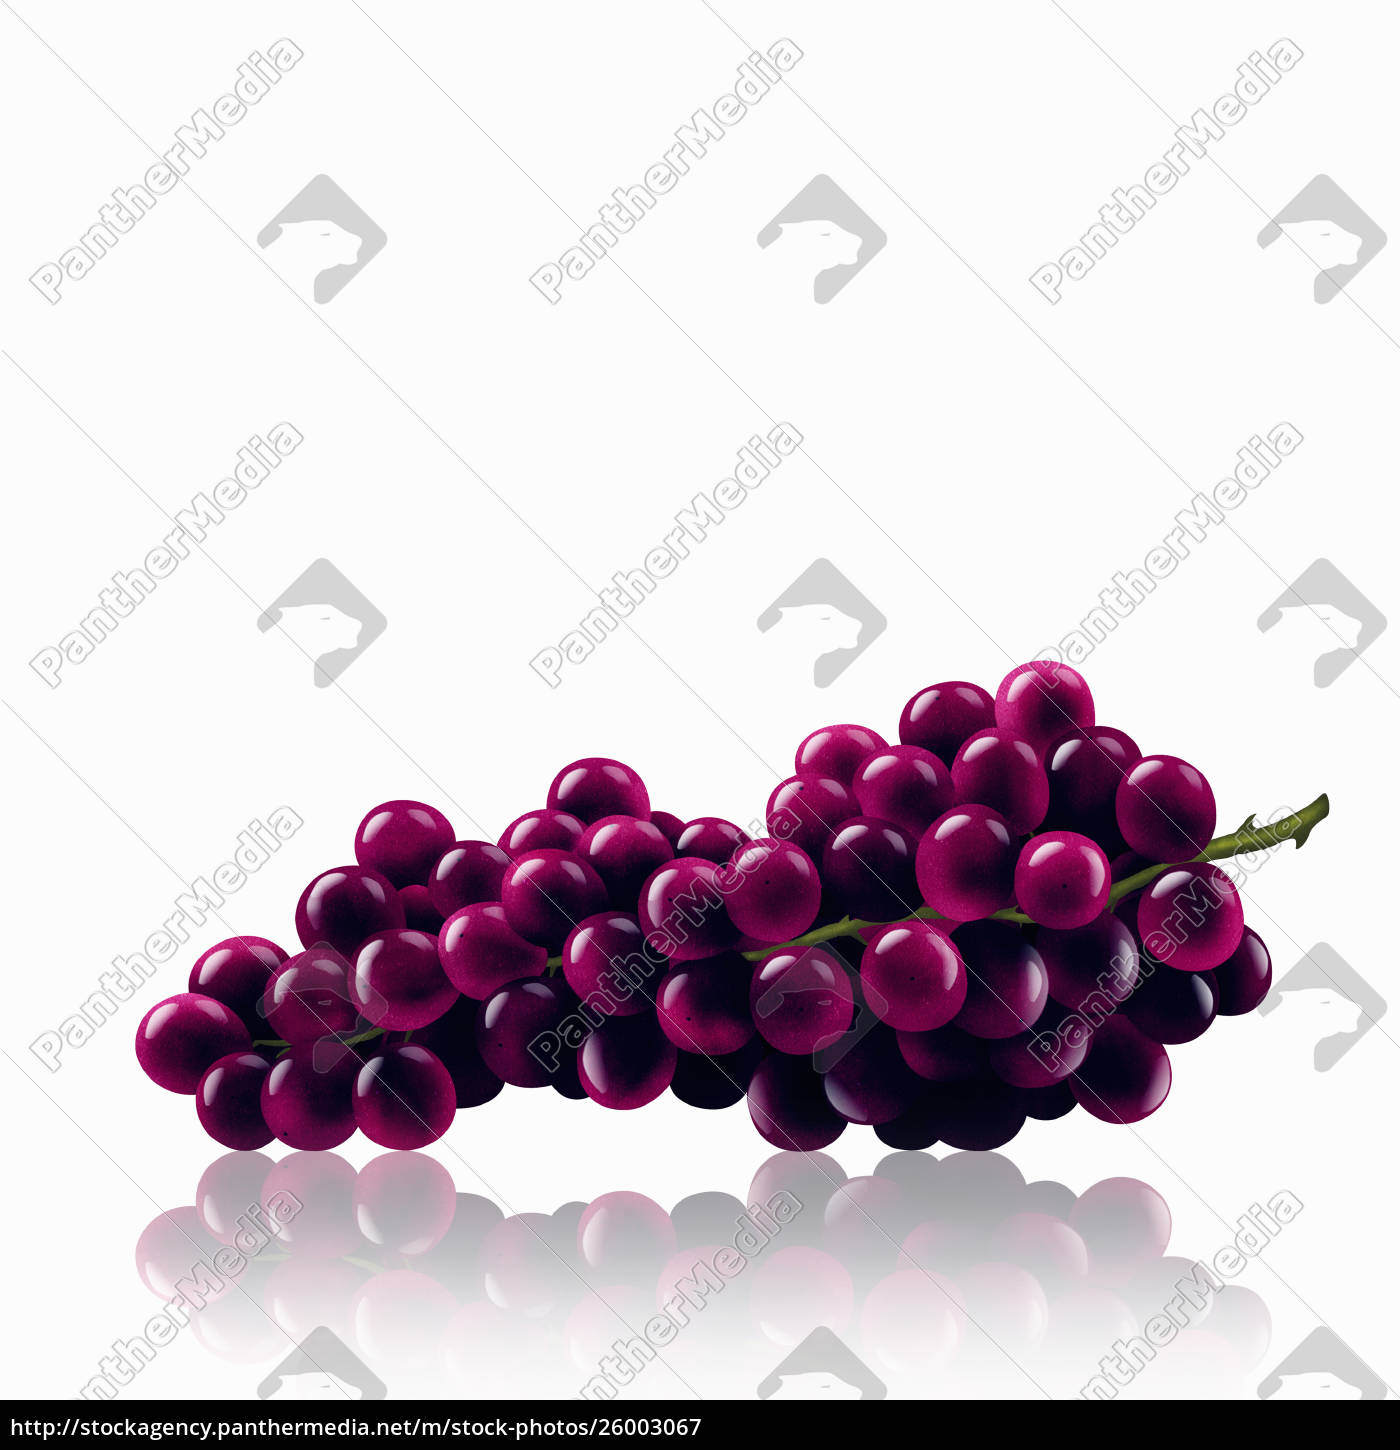 bunch, of, red, grapes - 26003067